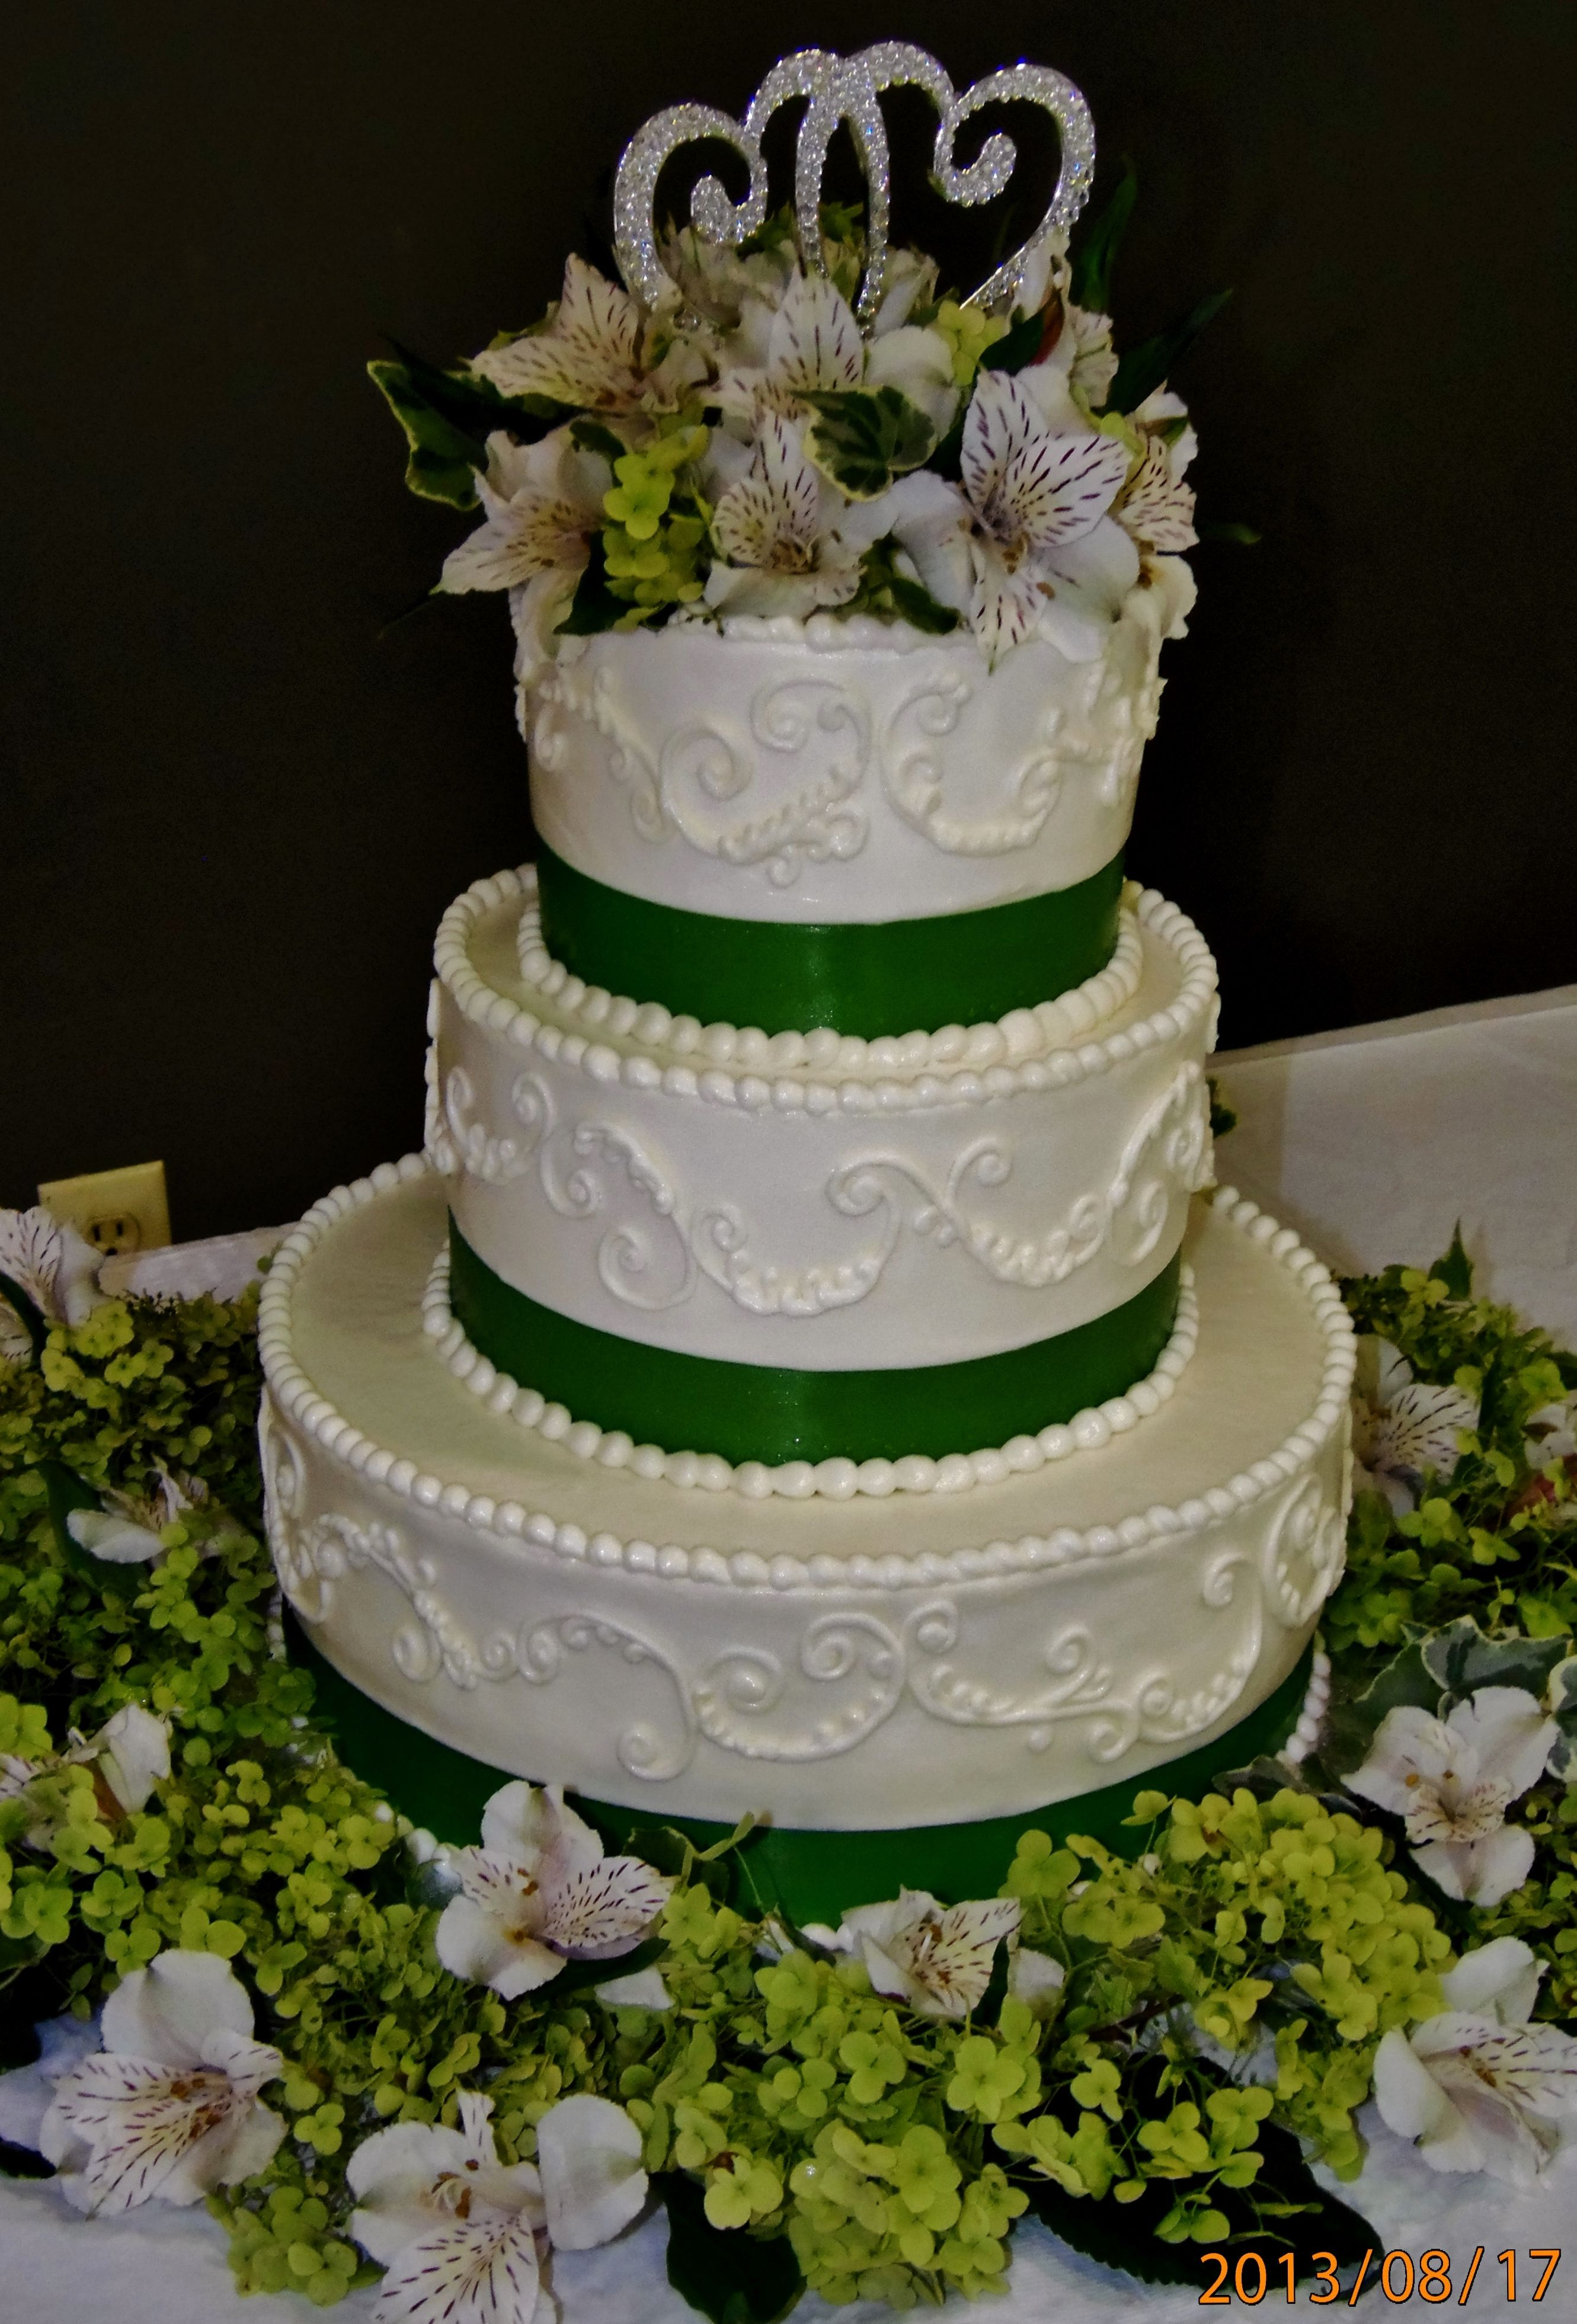 Green wedding cake w/ buttercream design and emerald green